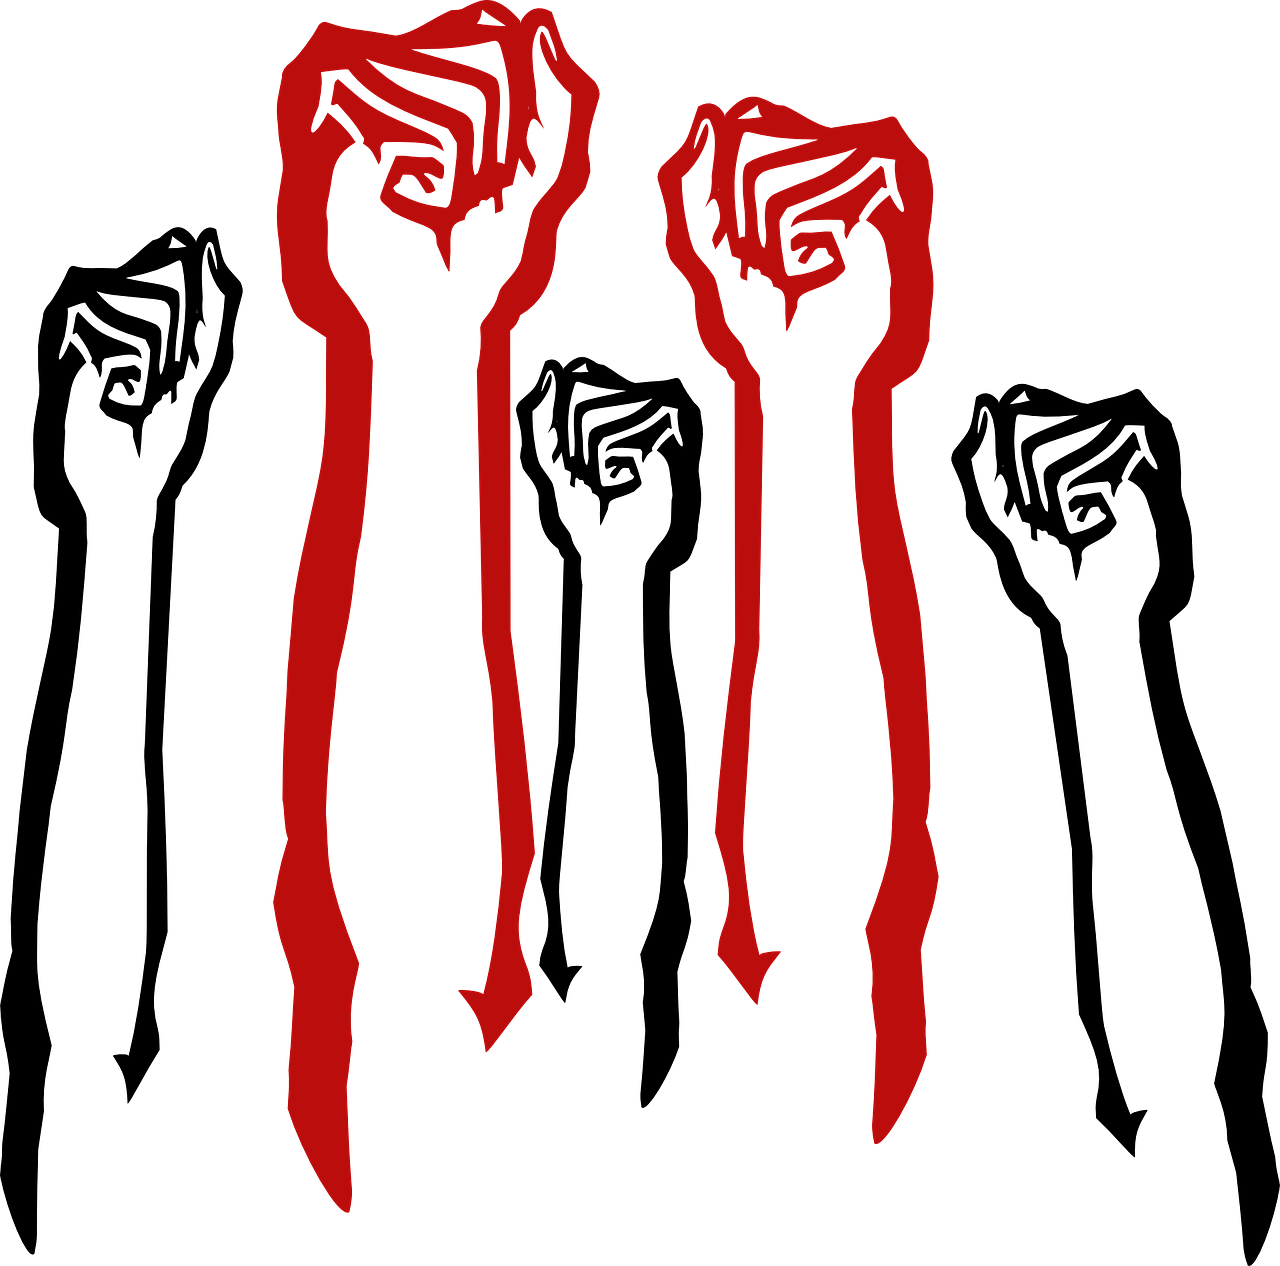 Fist vector png. Standing up for your